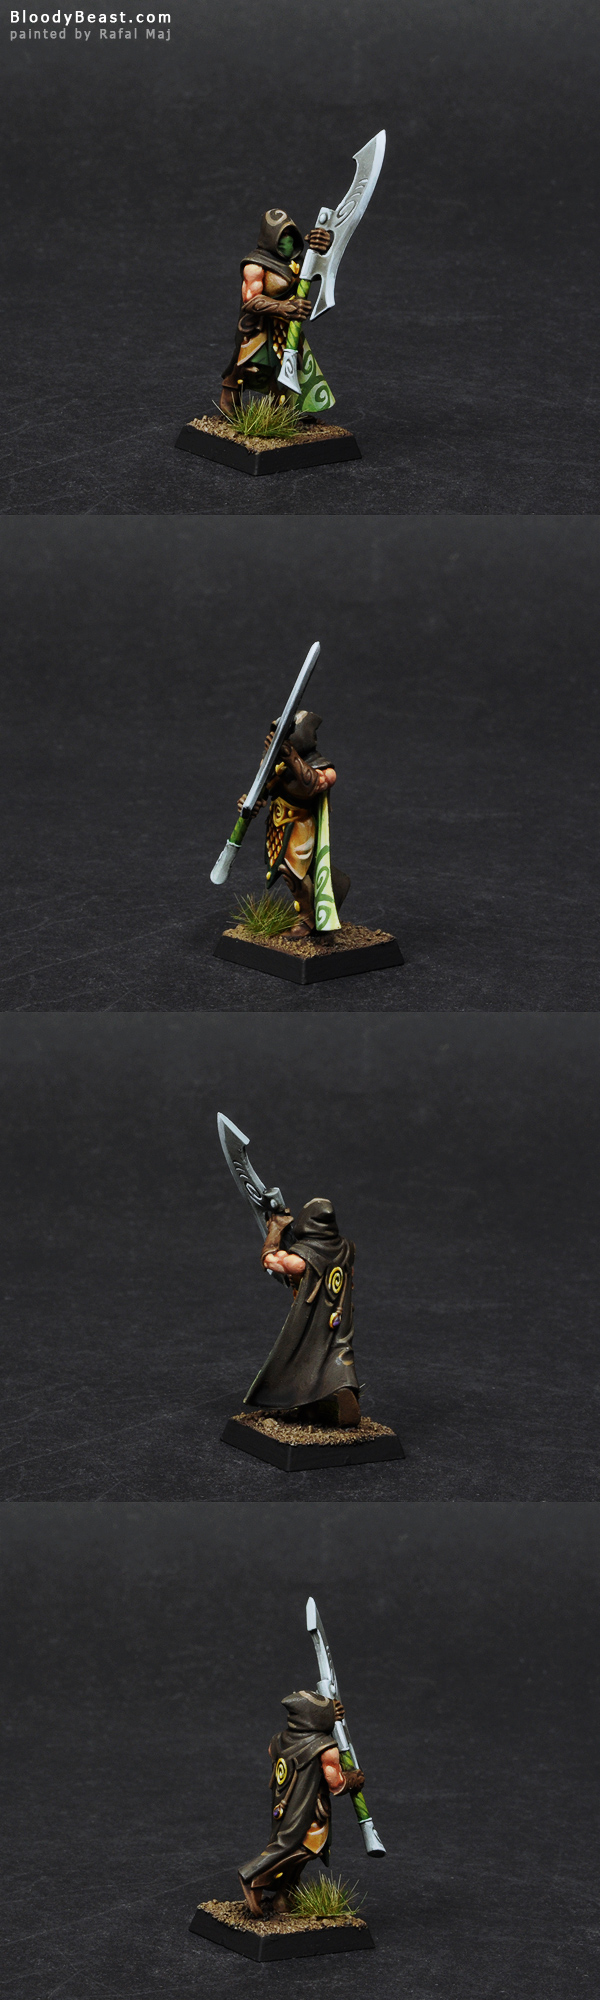 Wood Elf Wildwood Ranger painted by Rafal Maj (BloodyBeast.com)